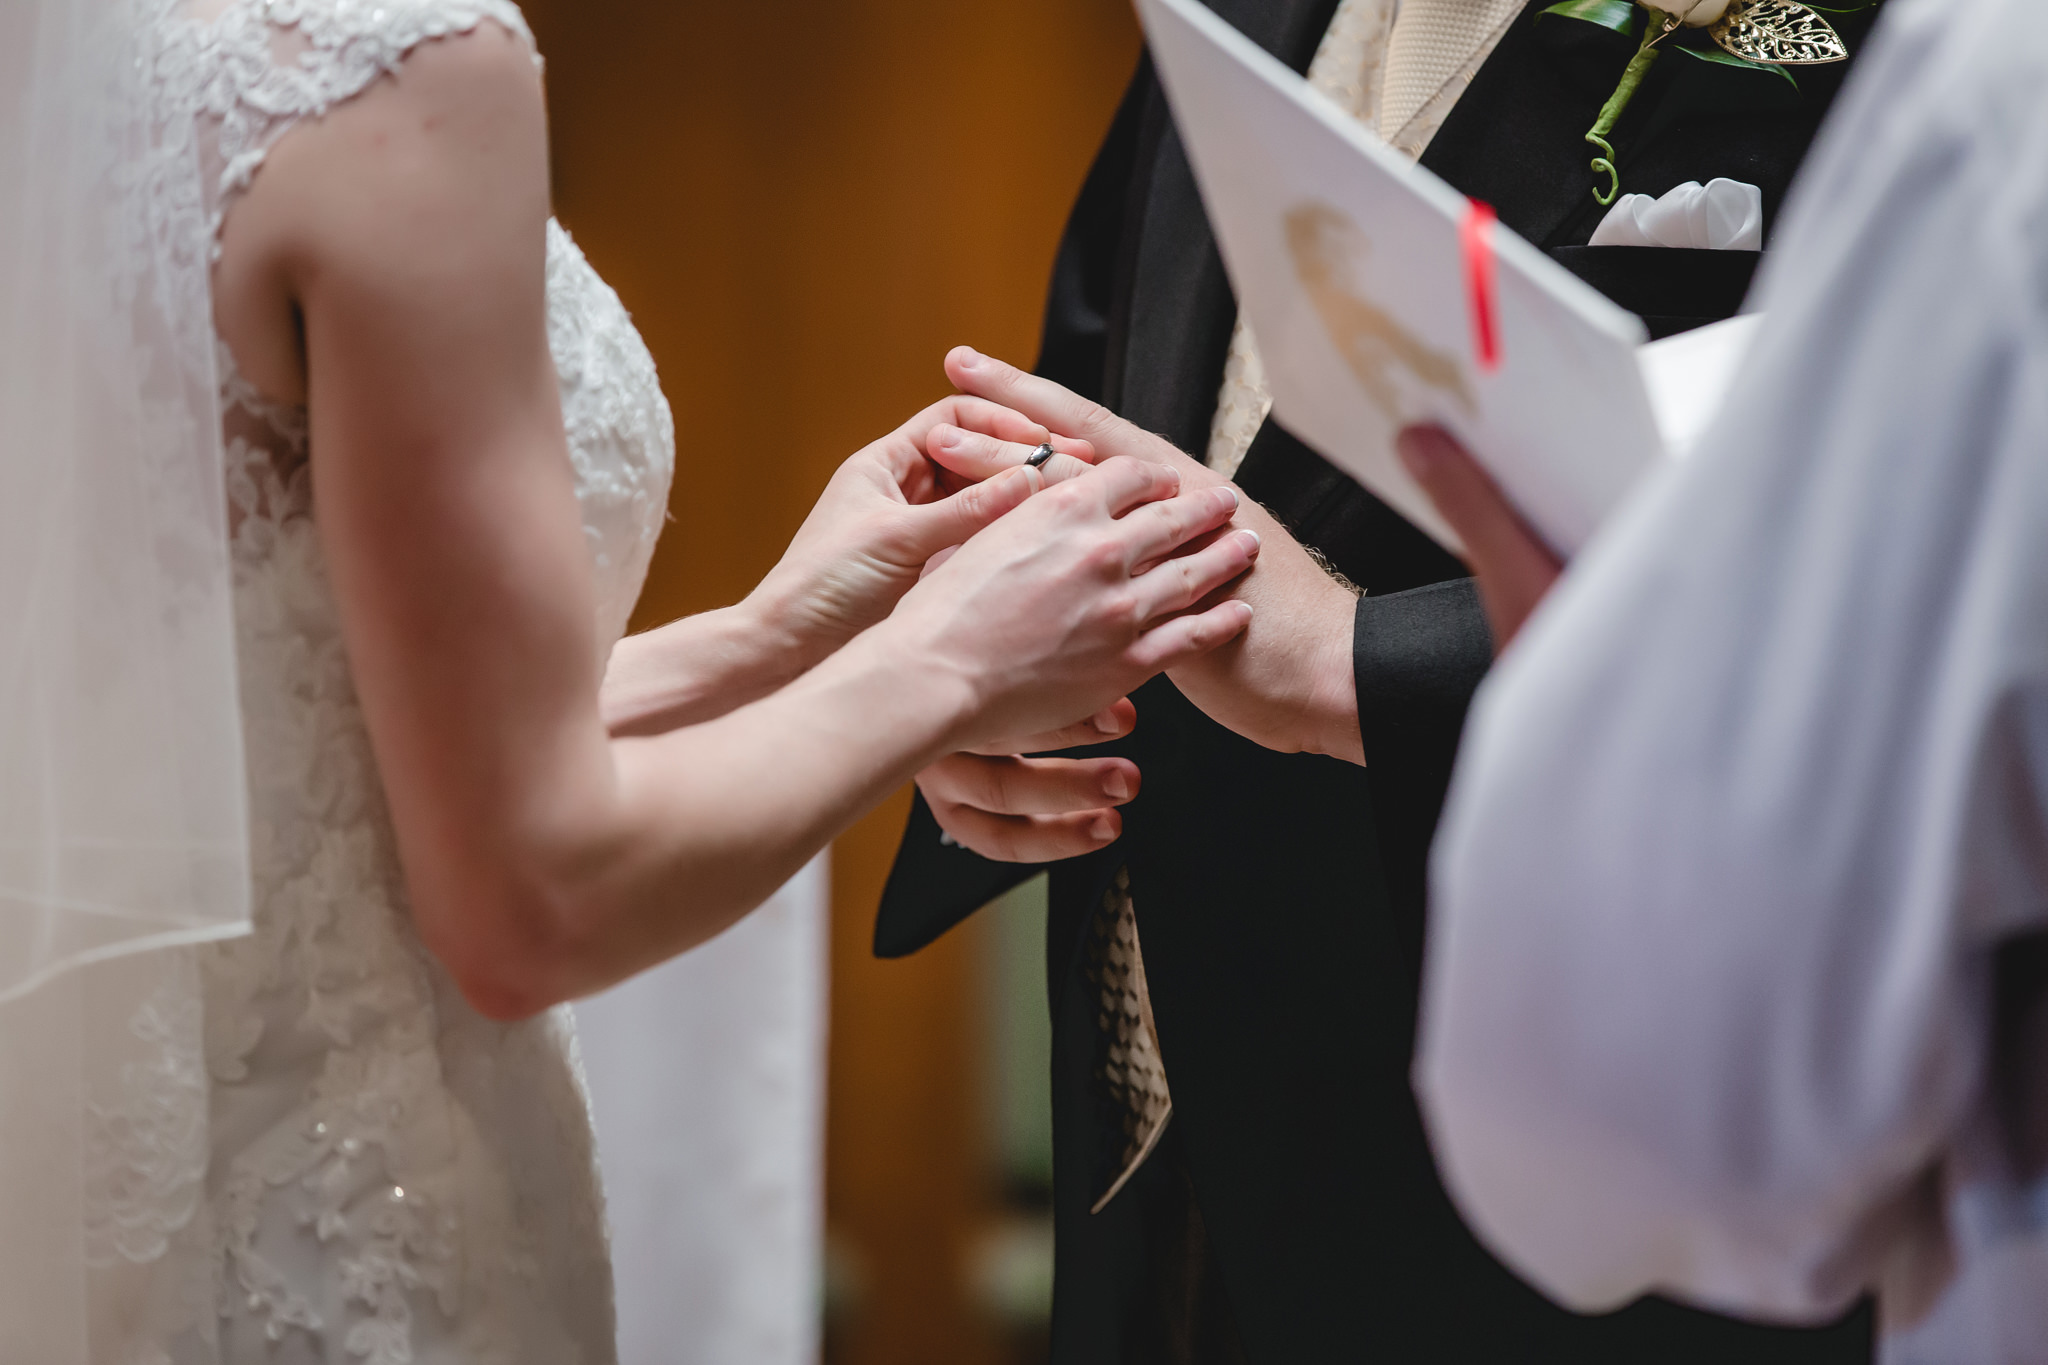 Bride puts ring on groom's finger at St. John Neumann Church in Pittsburgh PA